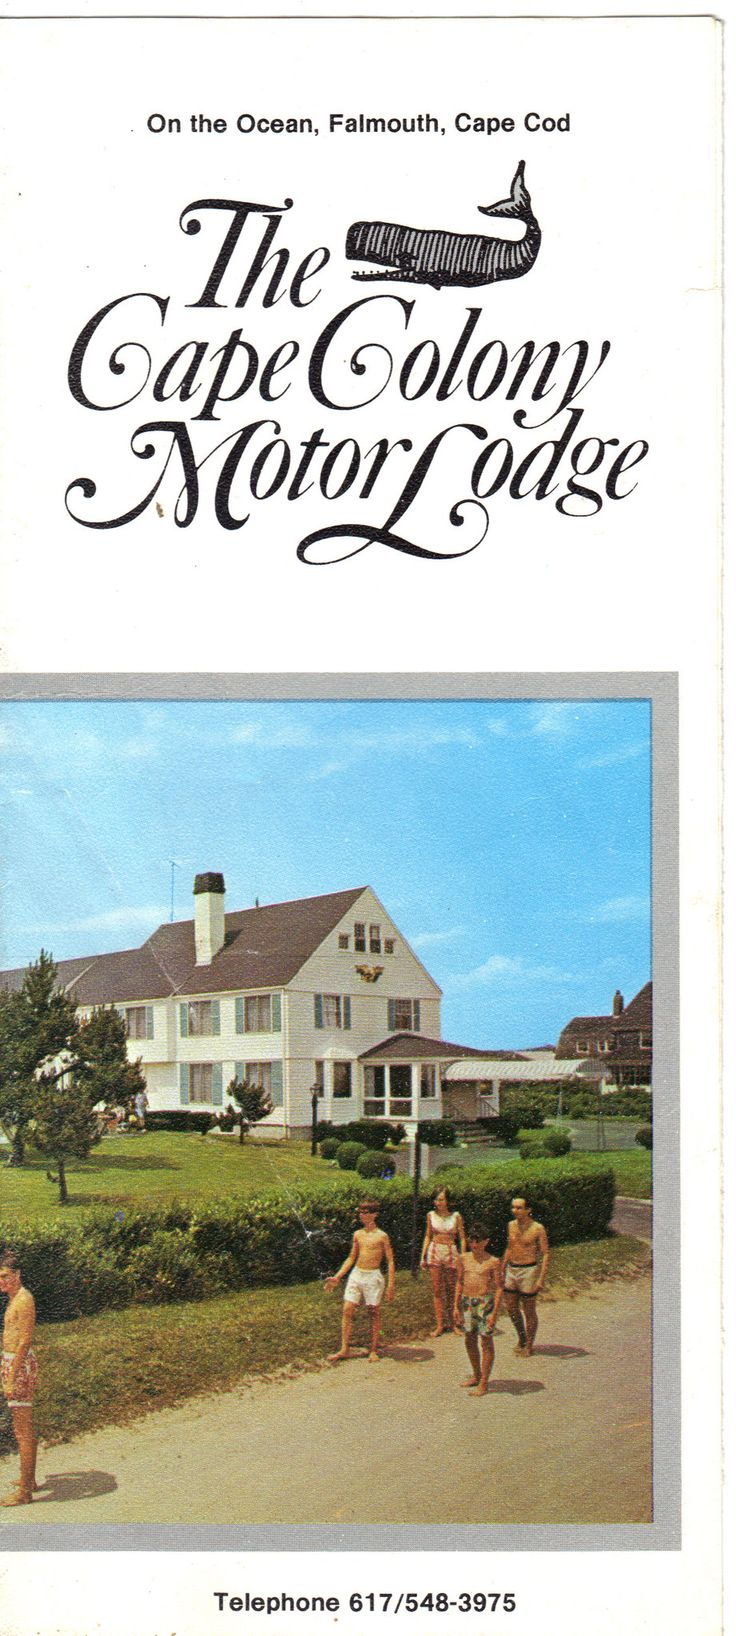 The Cape Colony Motor Lodge Brochure